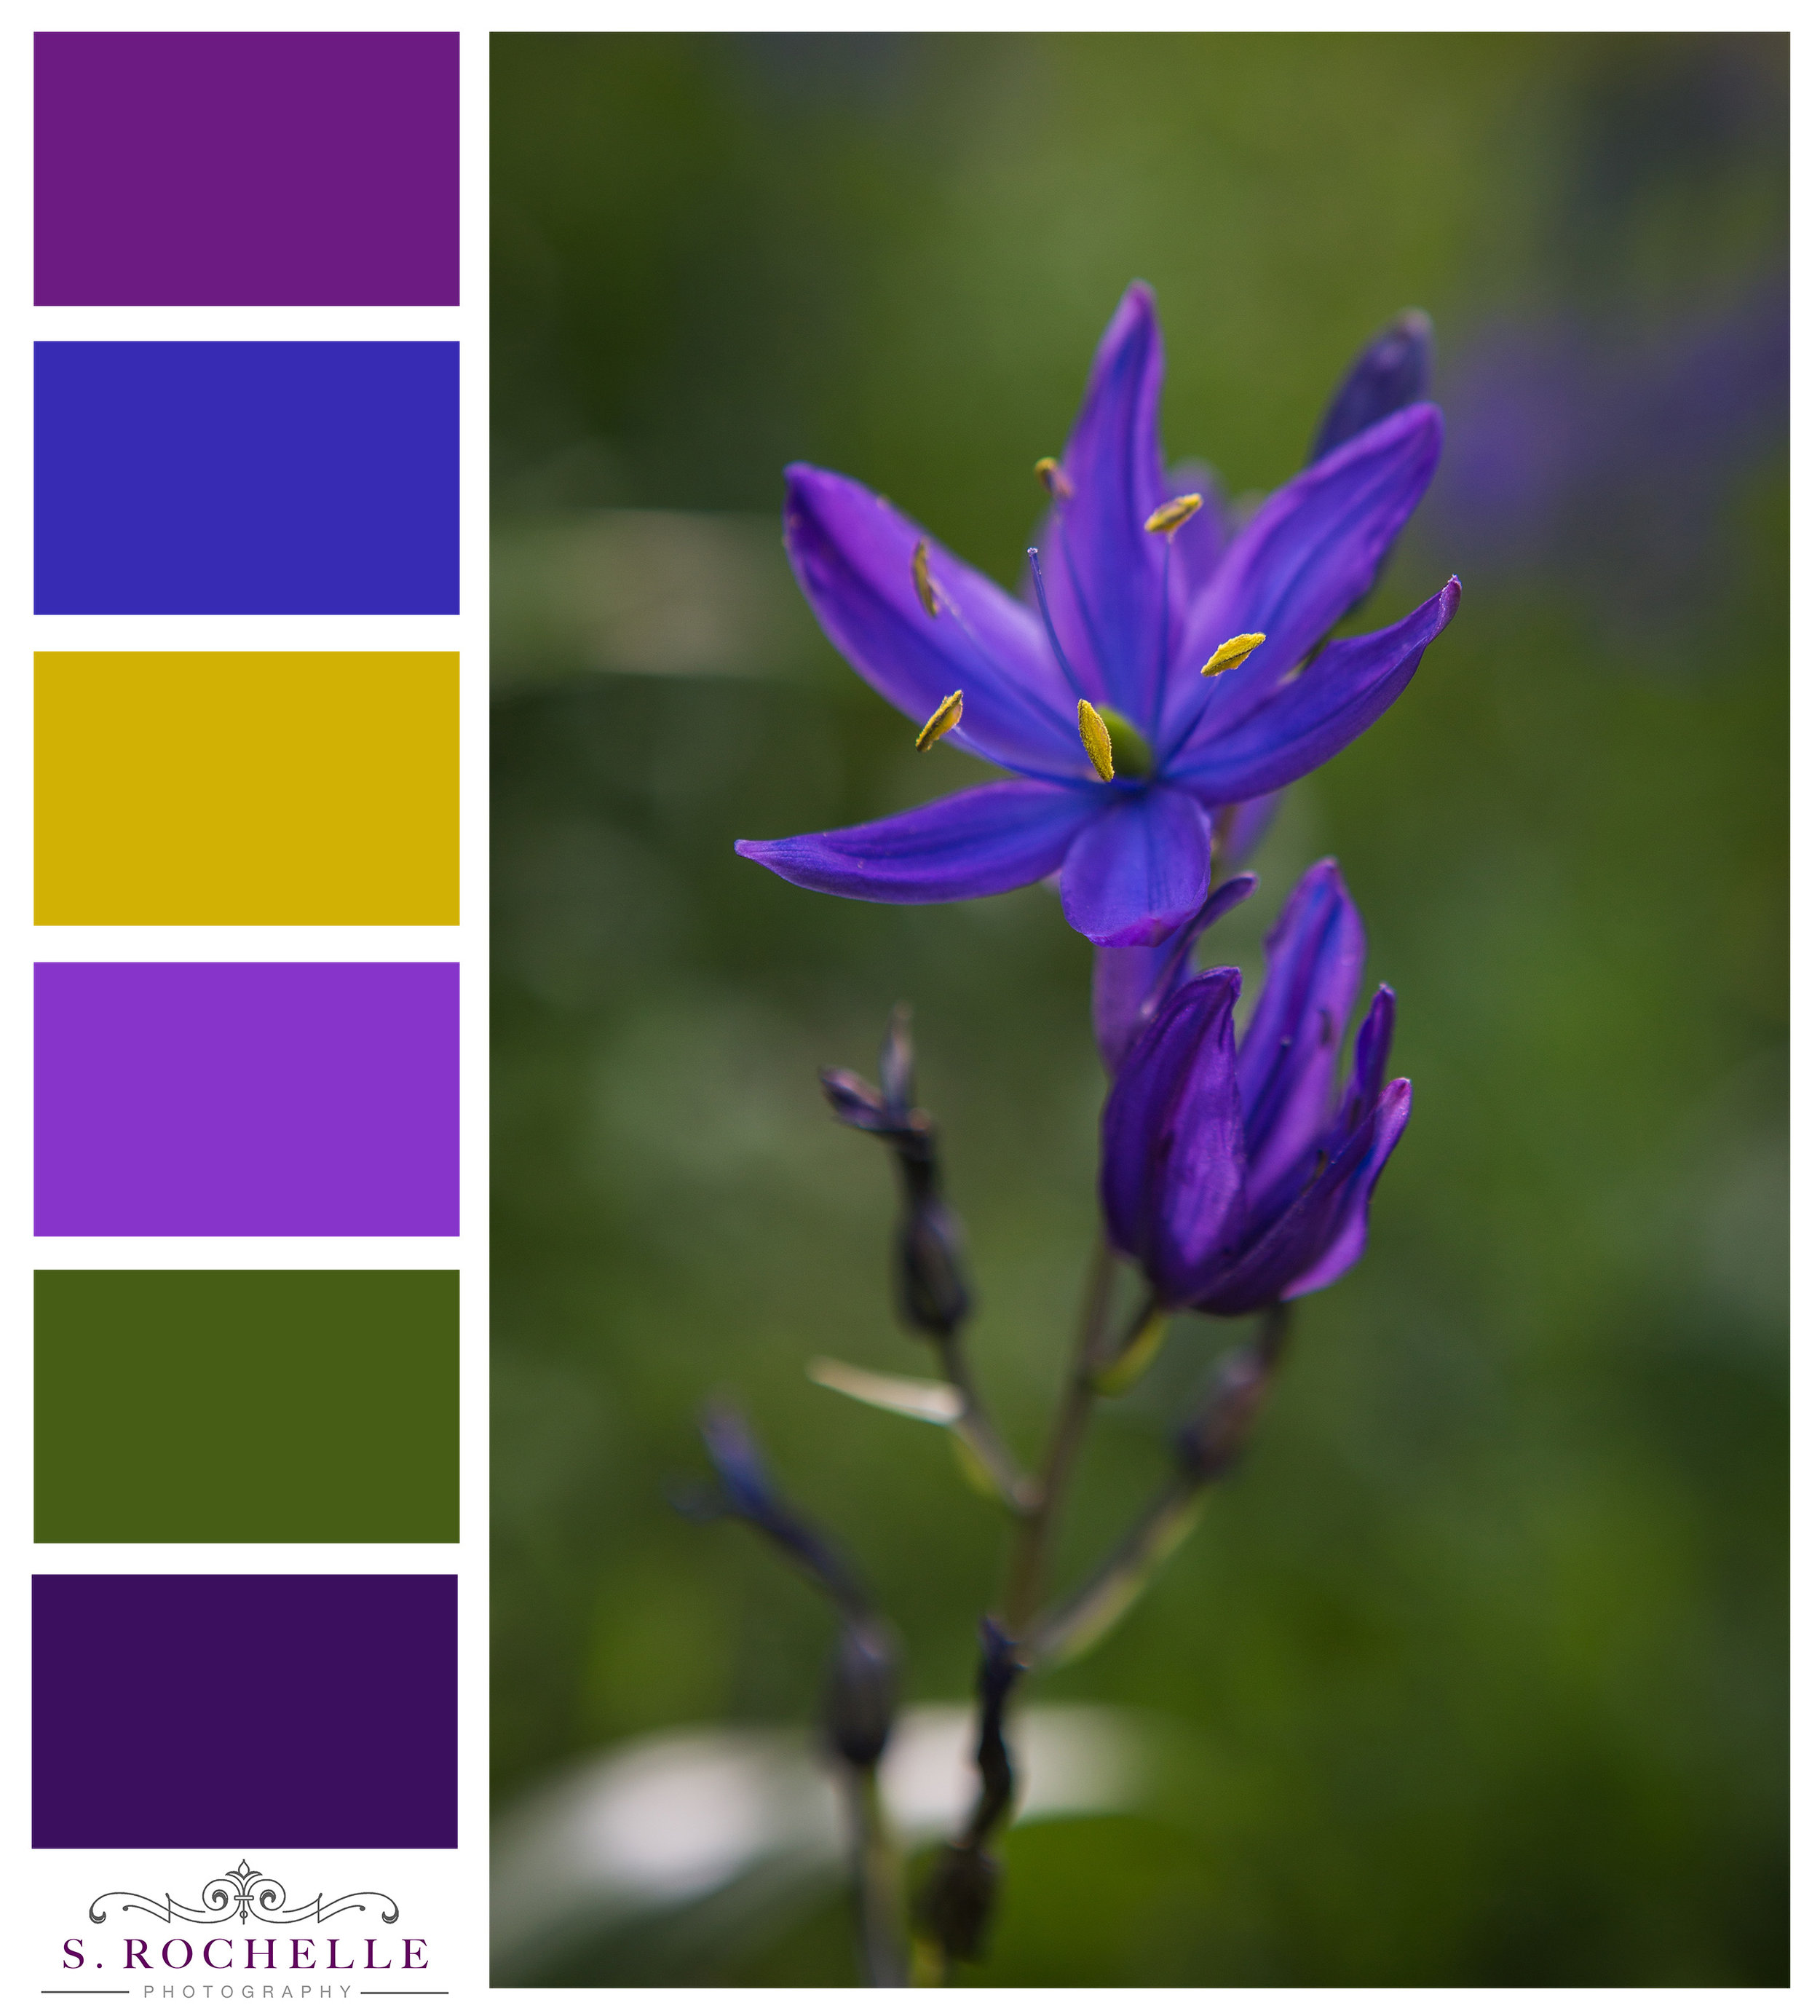 Camas_Lily_S_Rochelle_Photography_20180504_IMG_1656_ColorPalette.jpg